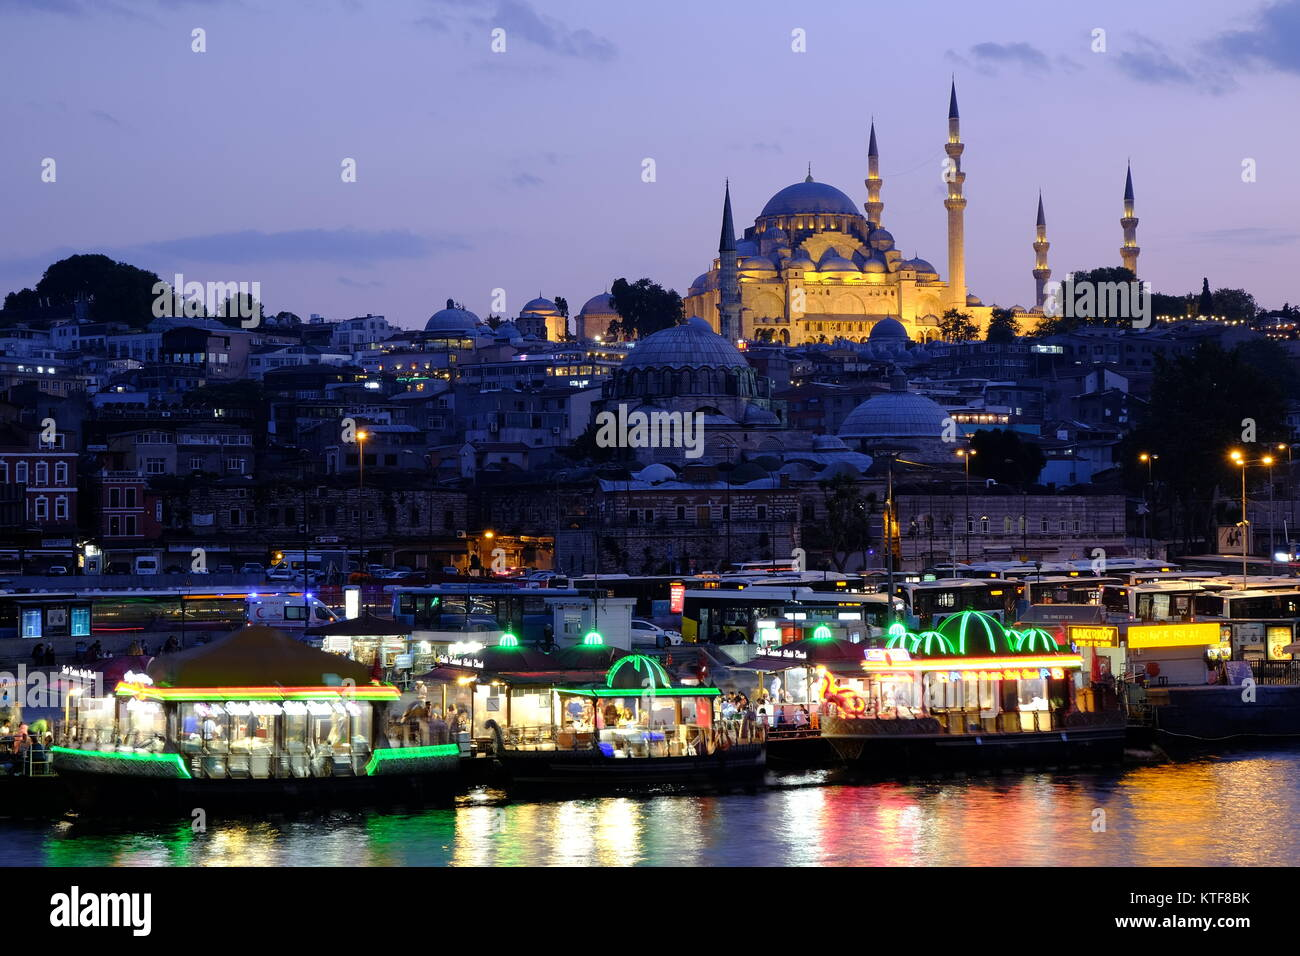 Rustem Pasha Mosque in lights at dusk in Istanbul, Turkey - Stock Image